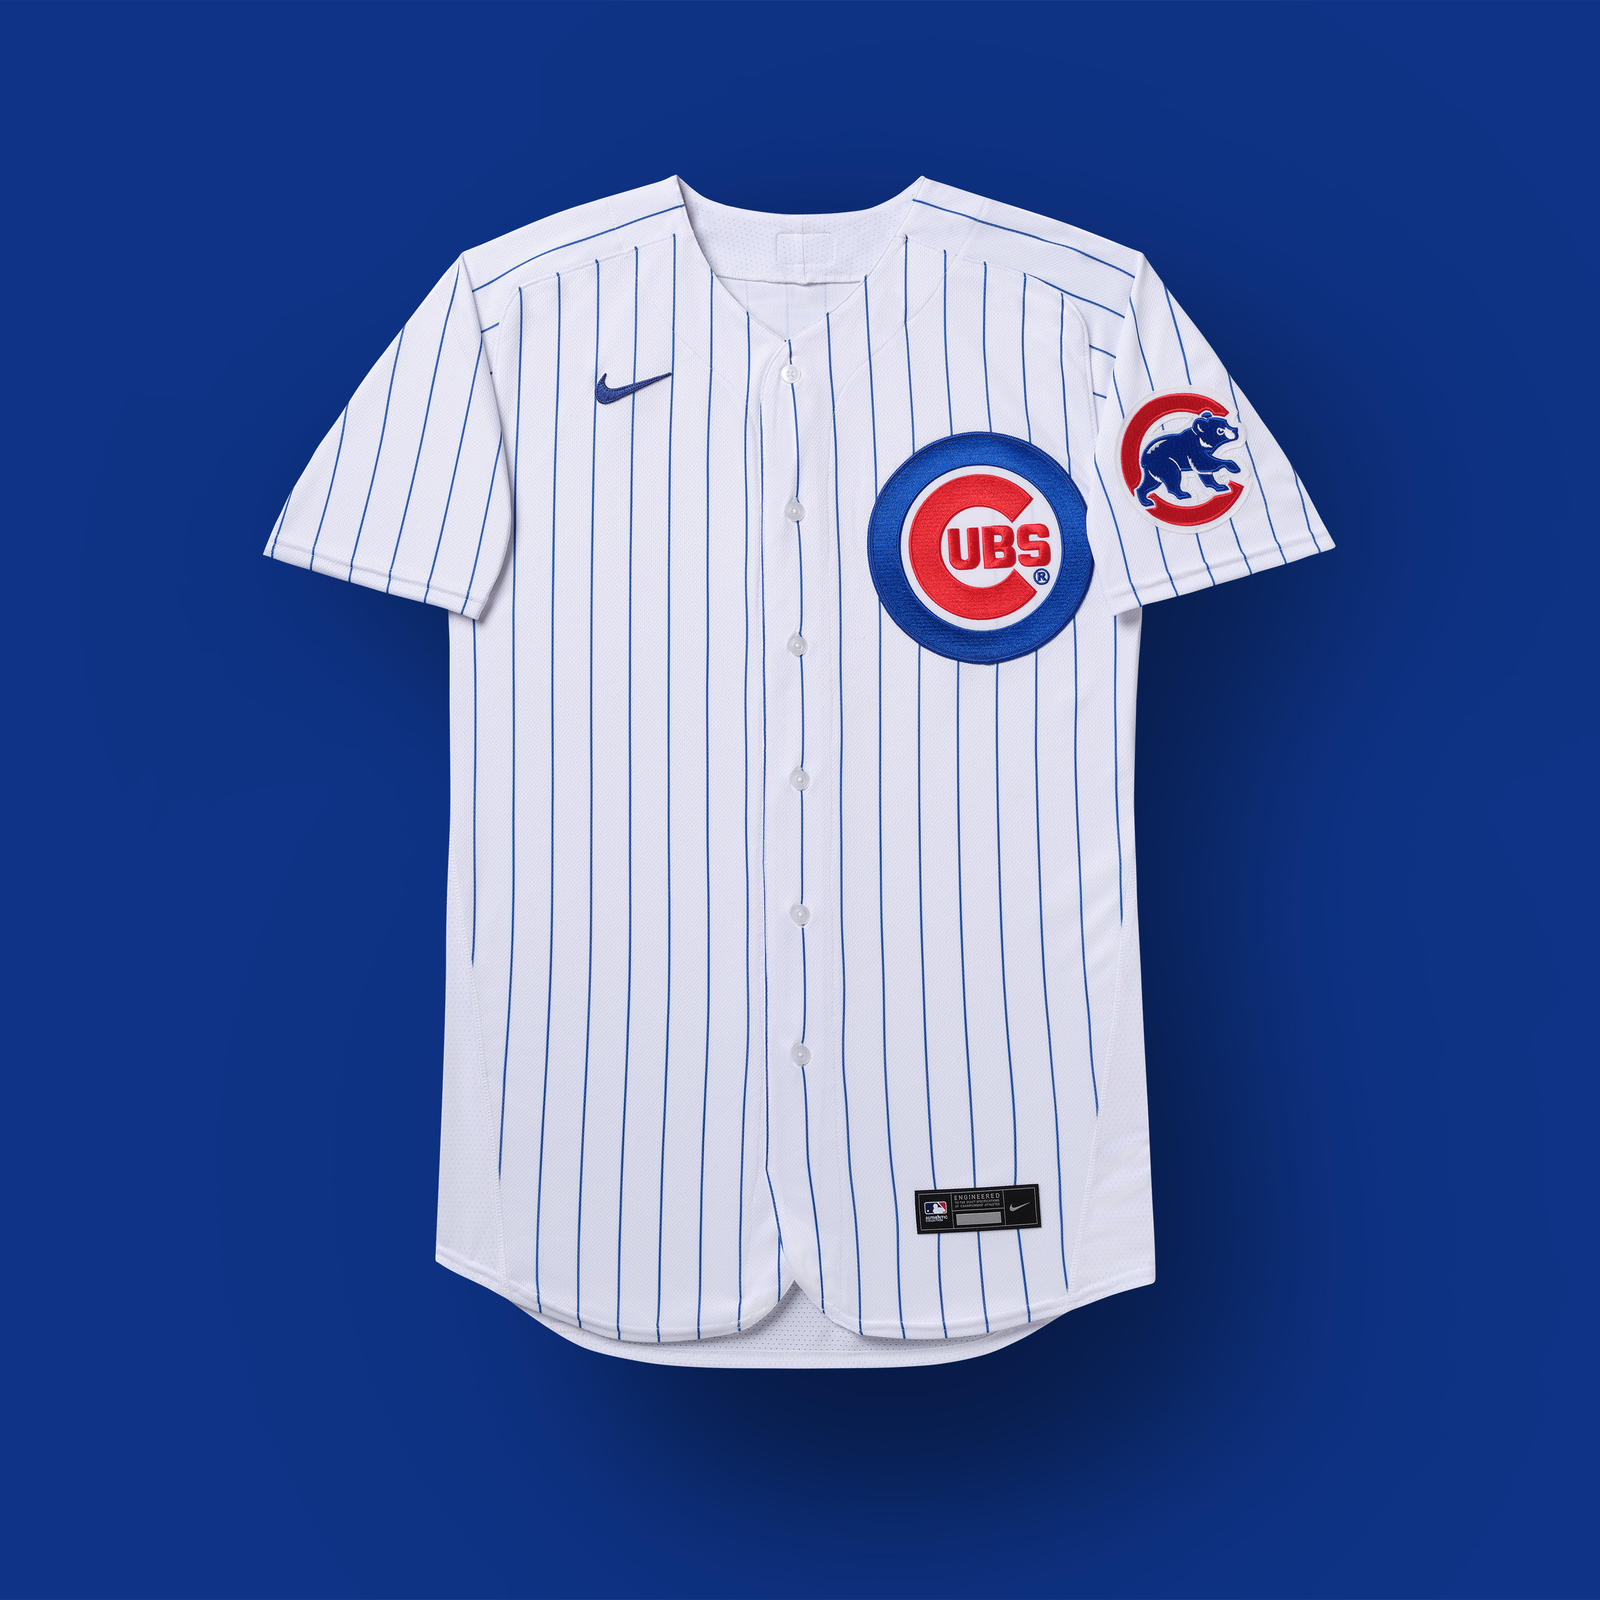 Nike x Major League Baseball Uniforms 2020 Official Images 0